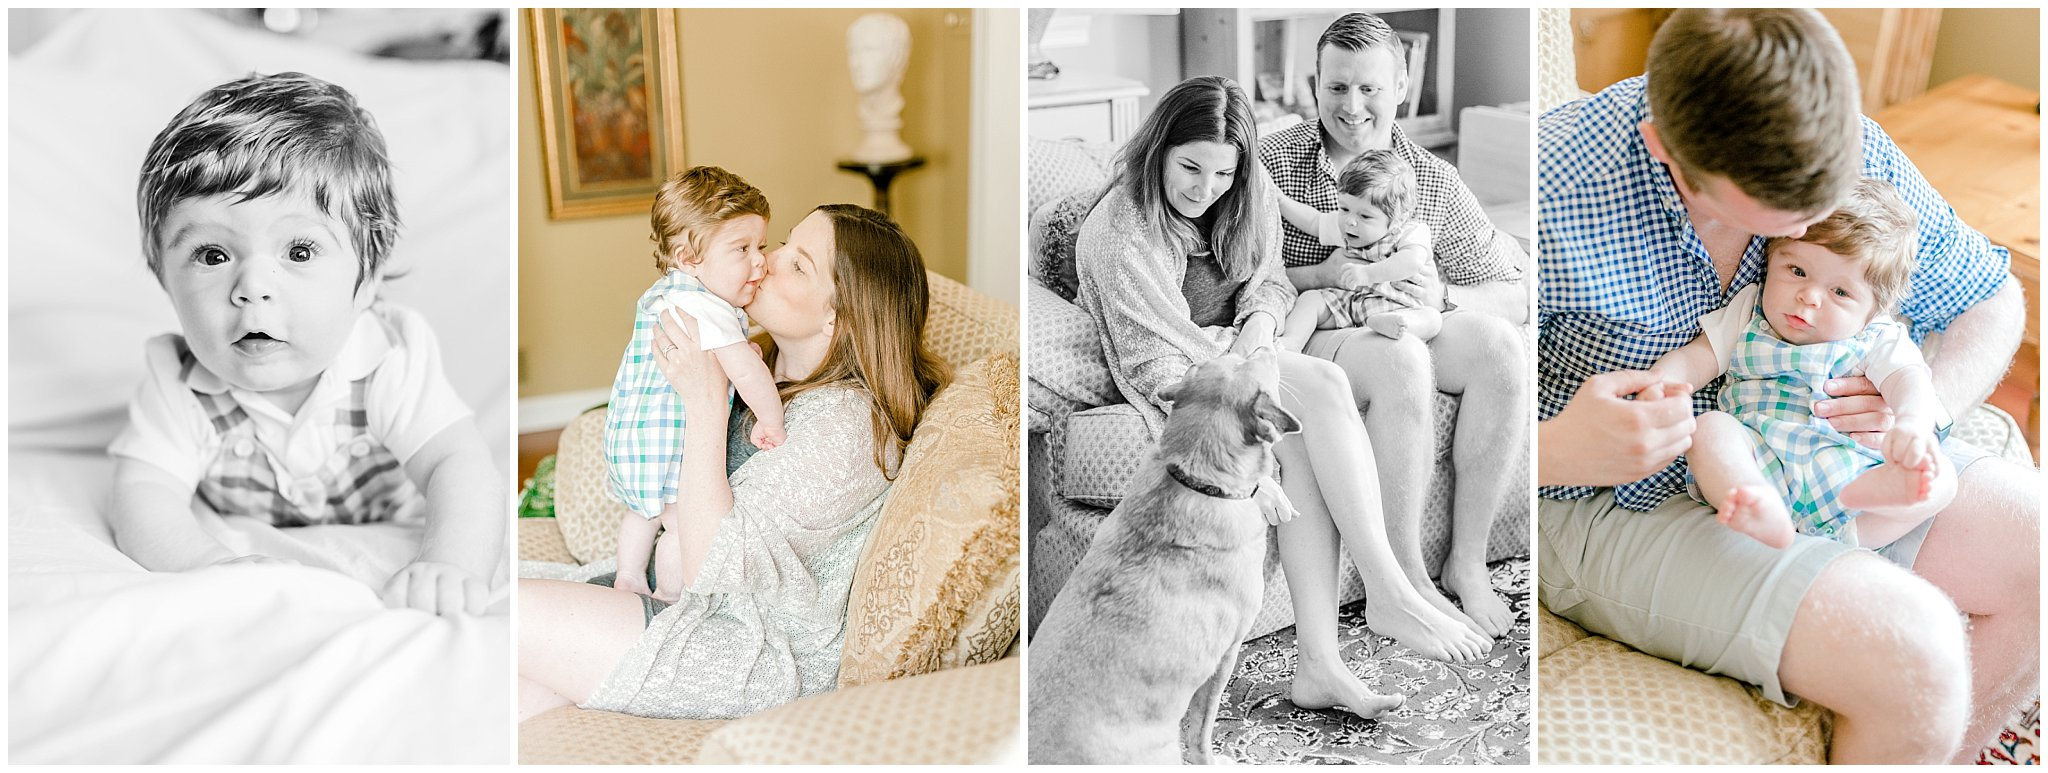 blue bell pa 6 month milestone session by lehigh valley based wedding and lifestyle photographer lytle photography (16).jpg